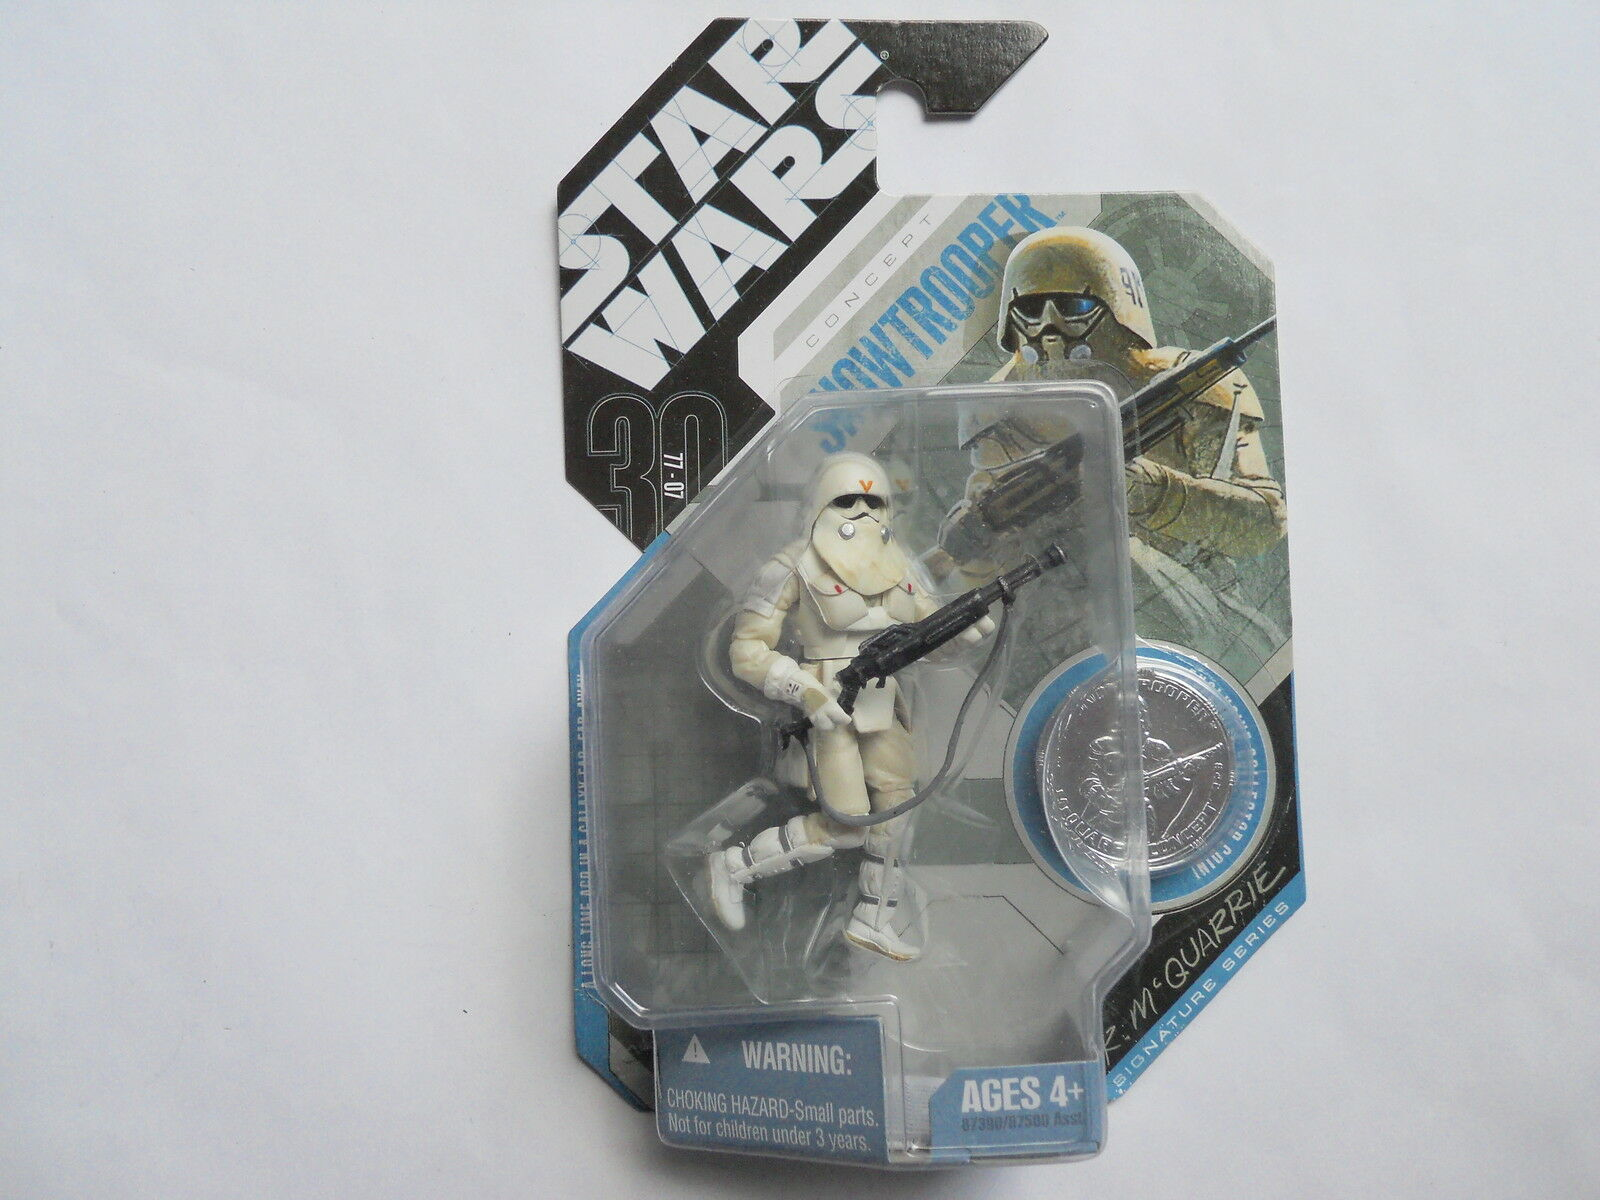 STAR WARS HASBRO FIGURINE   SNOWTROOPER   DEDICATION VERY RARE   POTF MIB